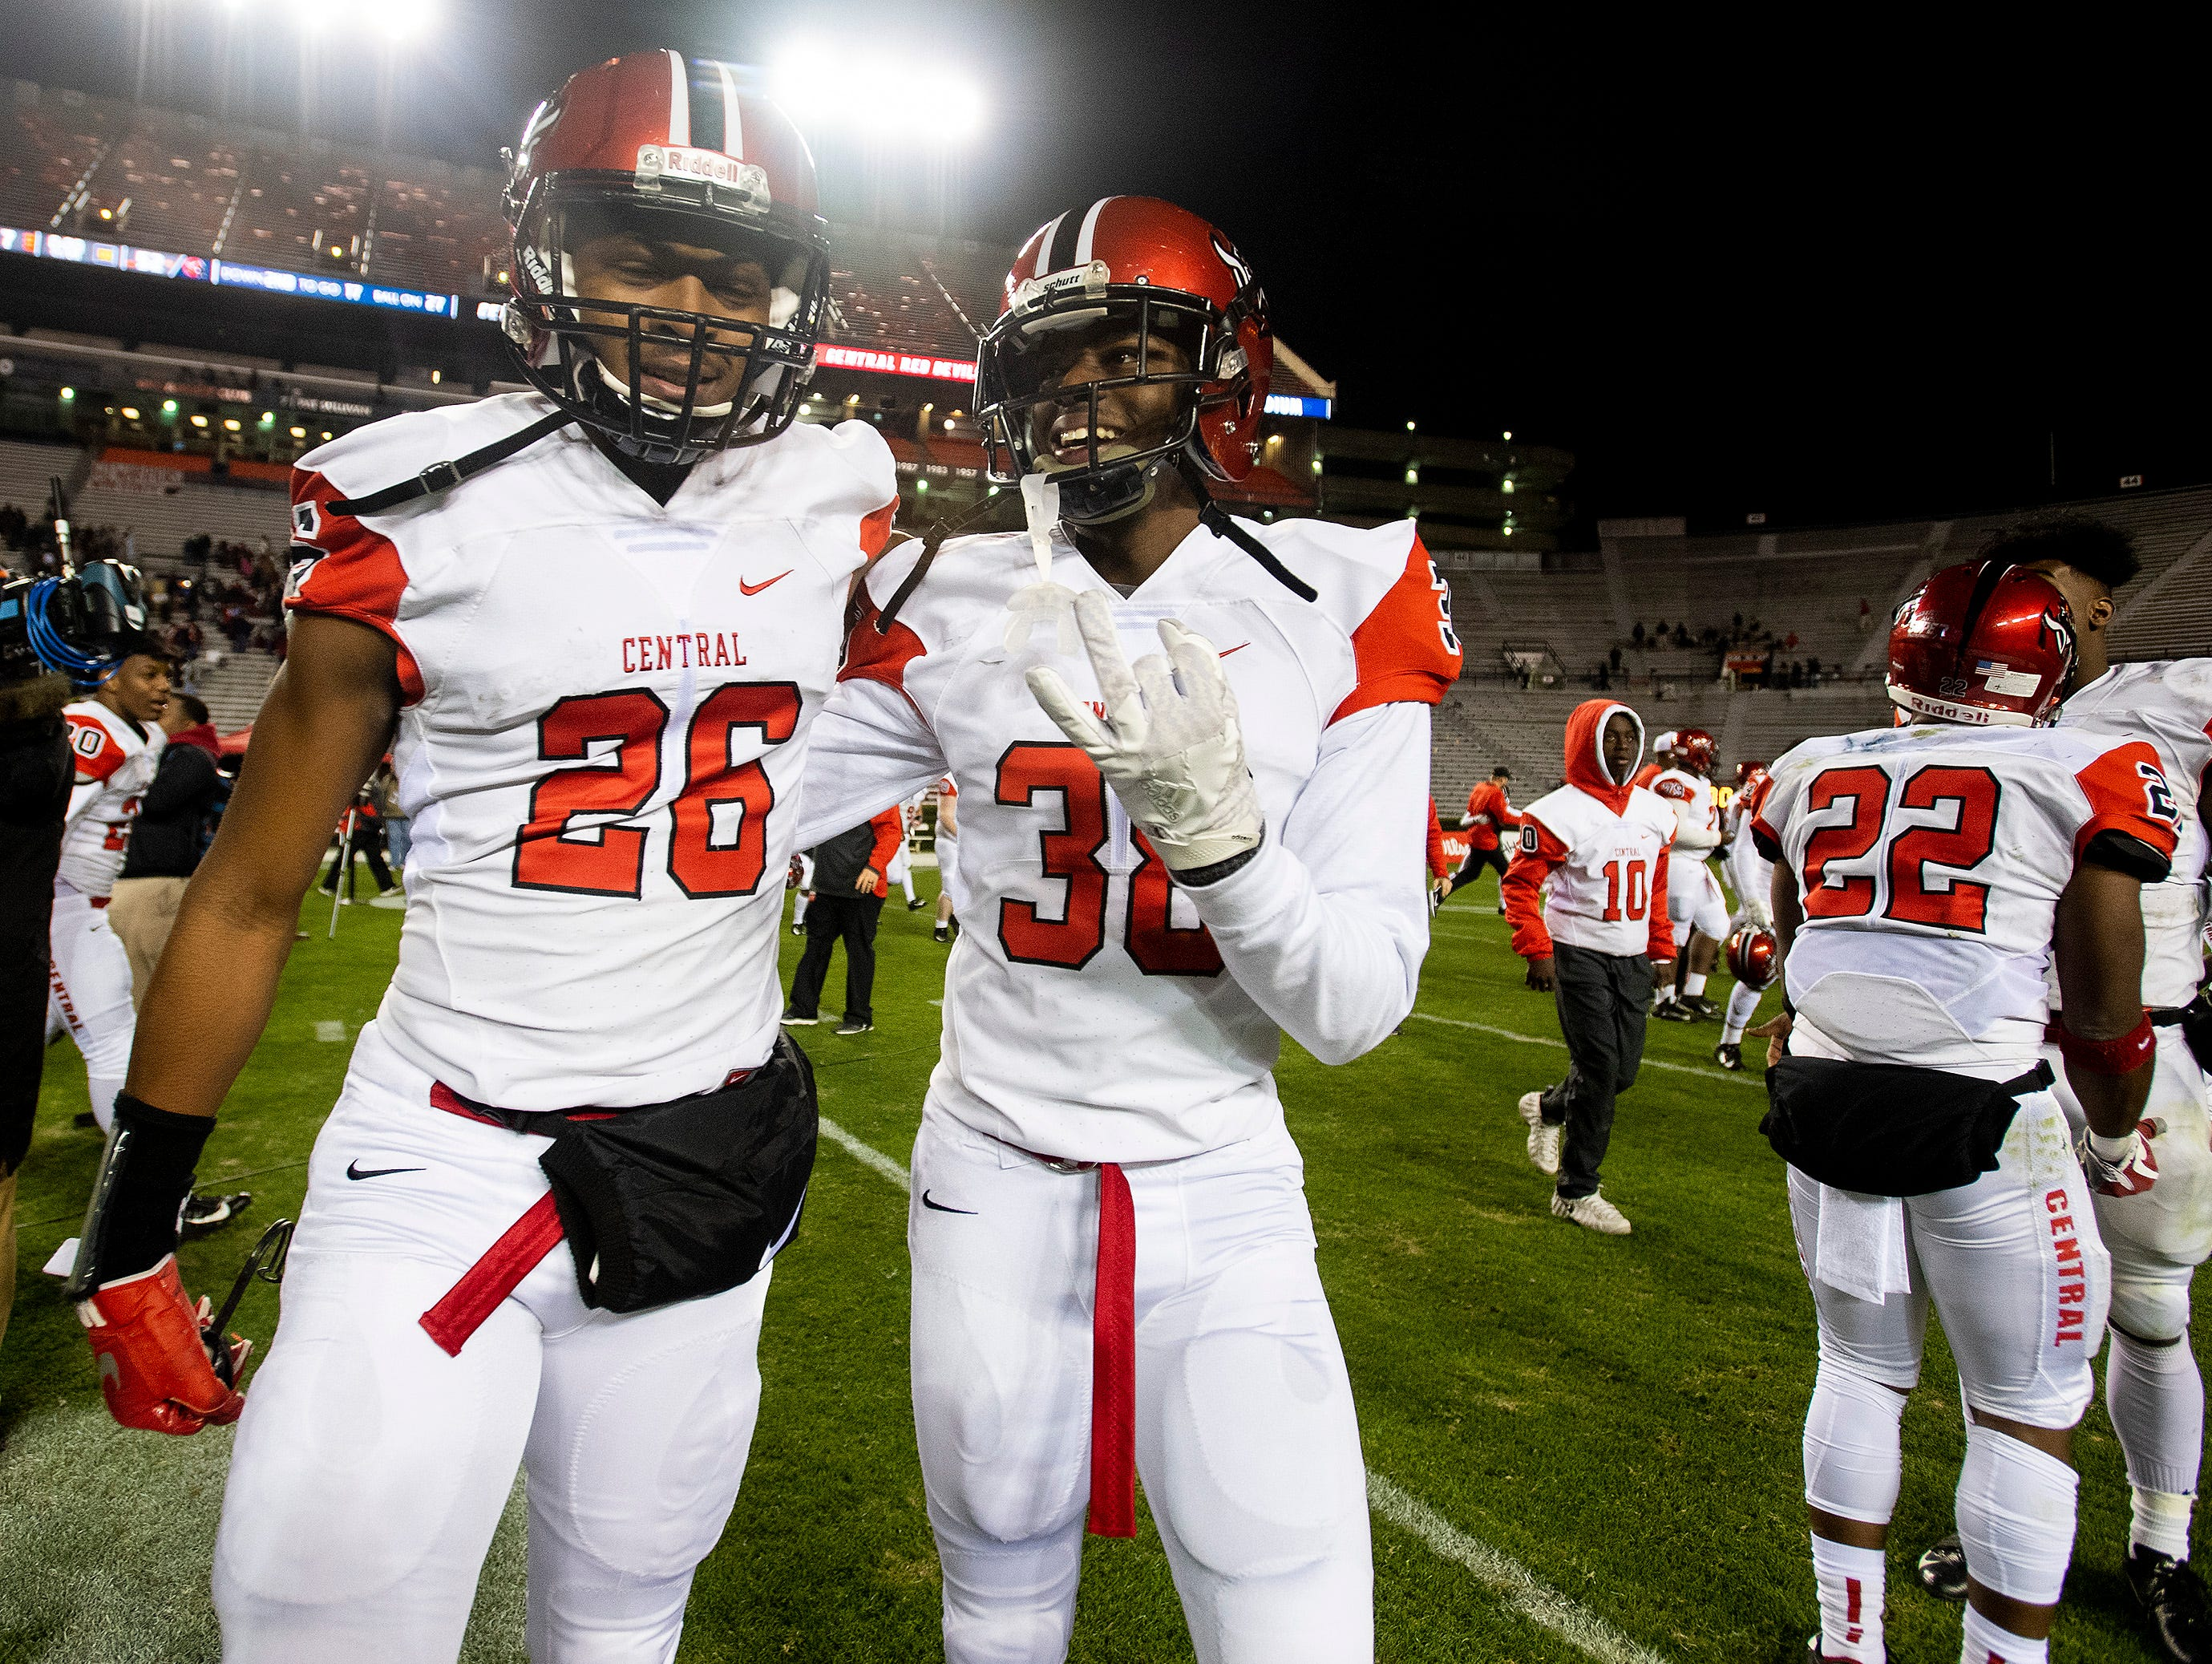 Central-Phenix City players celebrate after defeating Thompson in the AHSAA Class 7A State Championship Football Game at Jordan Hare Stadium in Auburn, Ala., on Wednesday evening December 5, 2018.